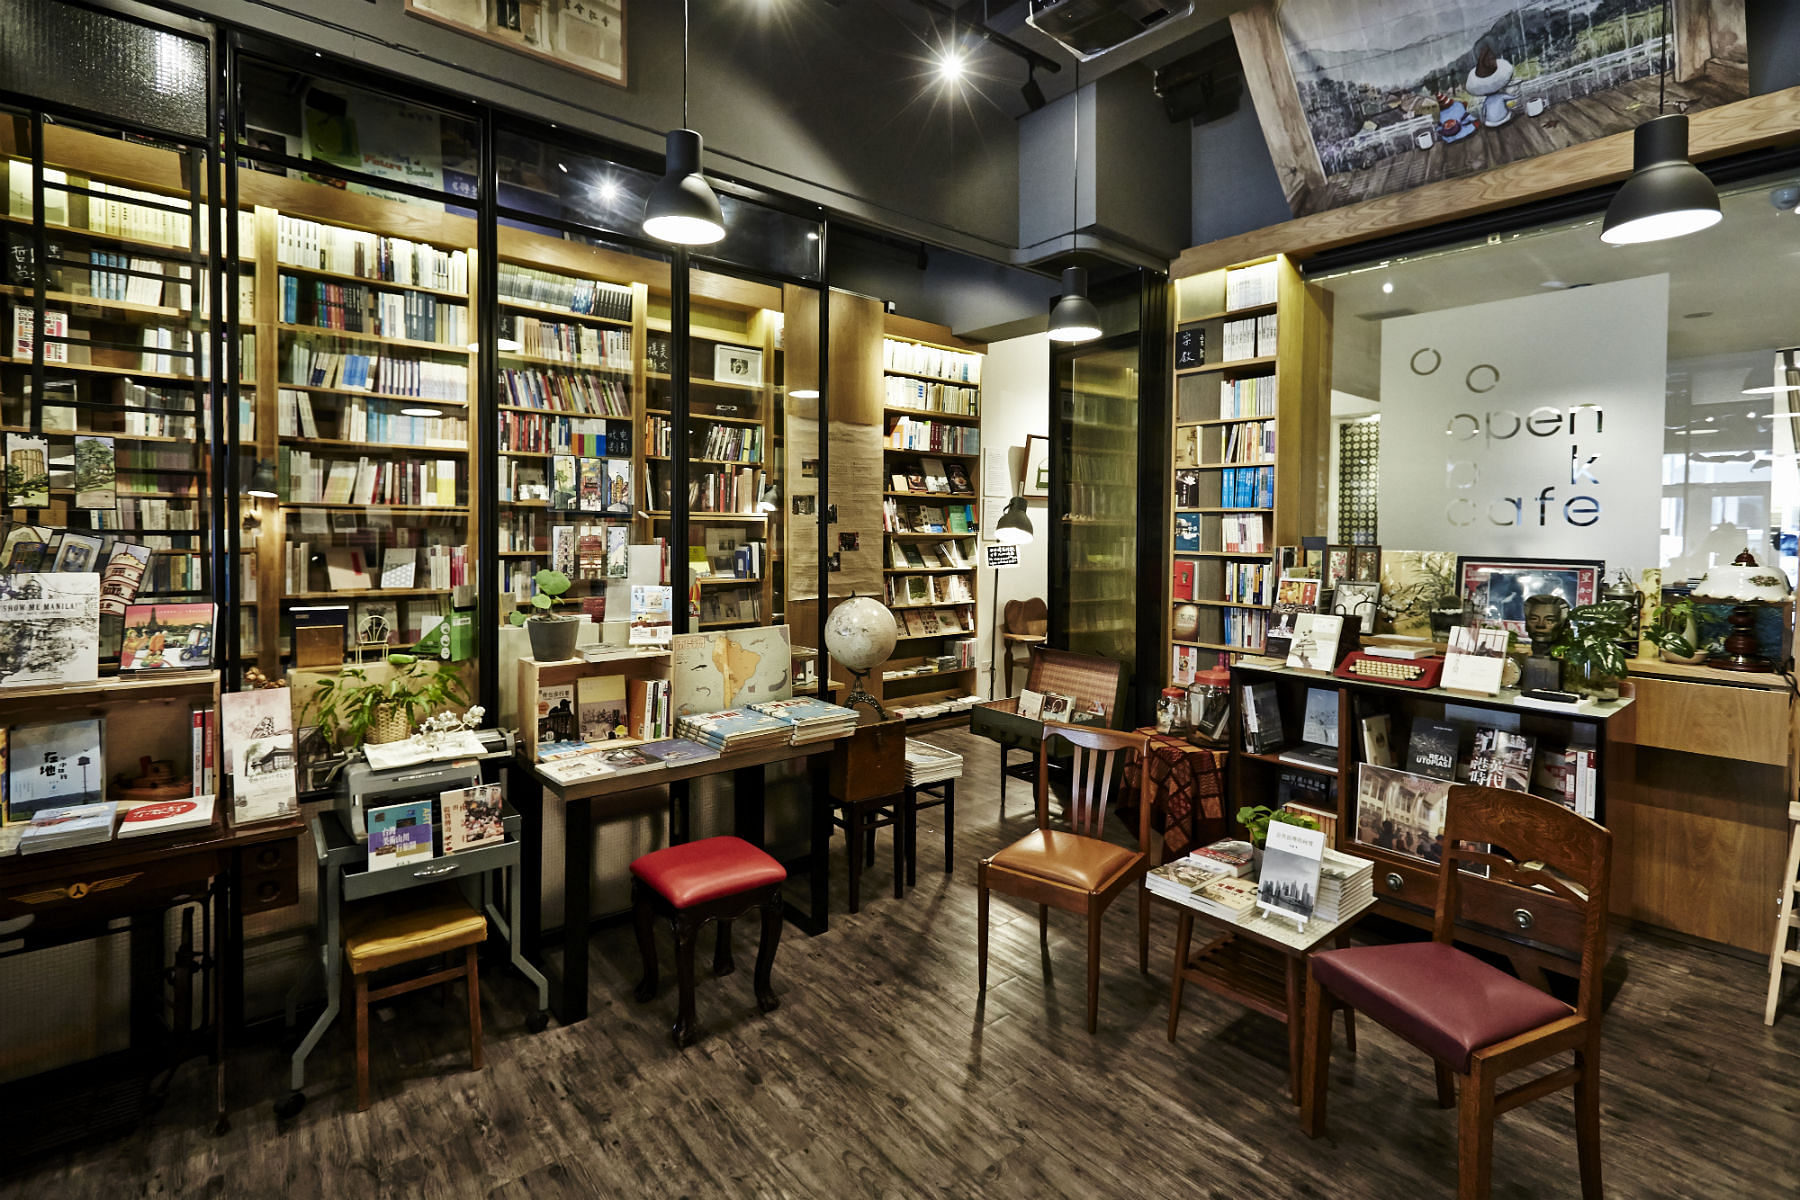 Independent bookstore grassroots book room home decor singapore - Home decor books ...